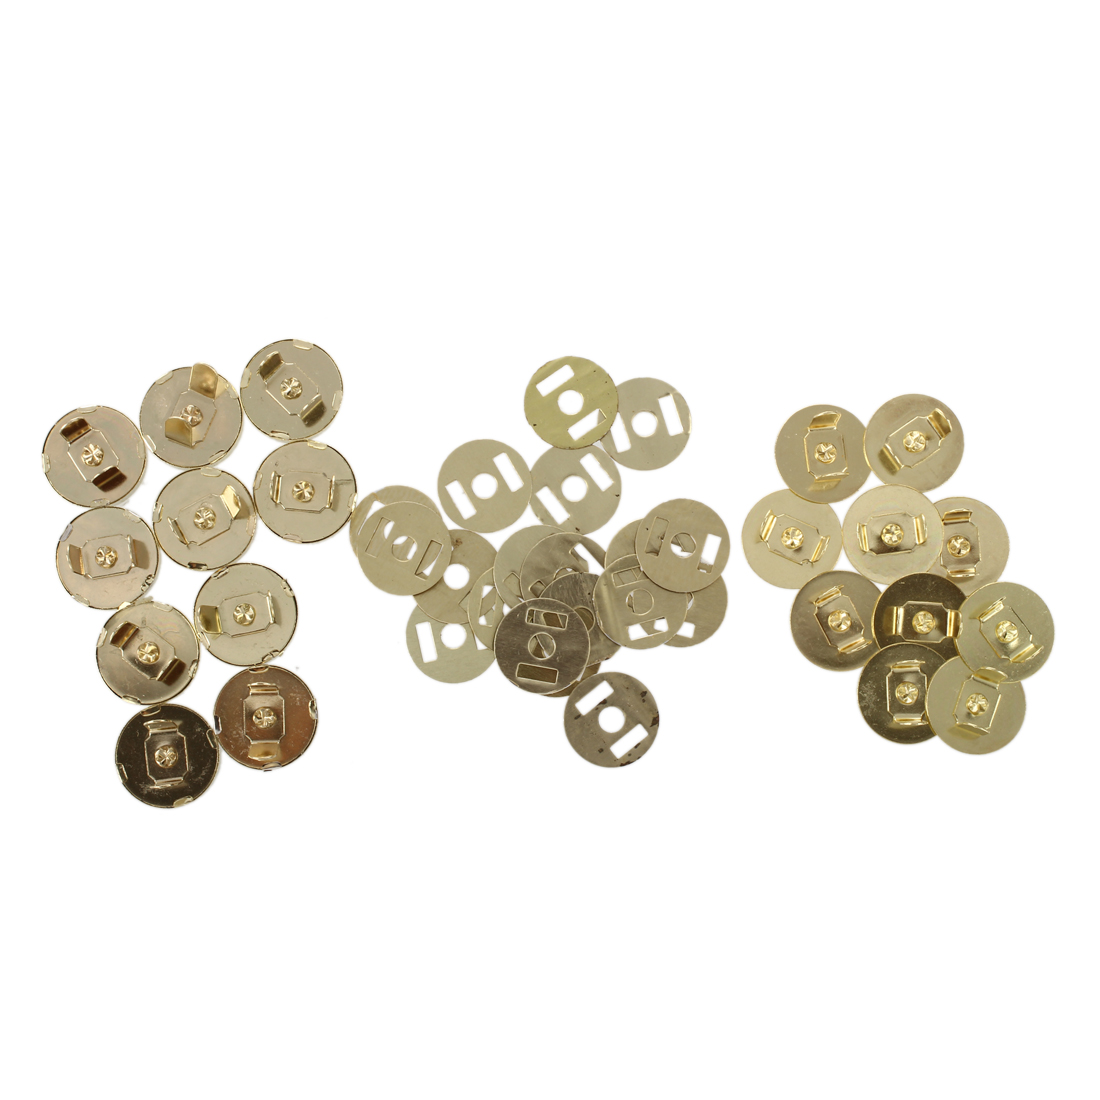 10 pcs Gold Magnetic Snap Fasteners Buttons 18X14MM X5Z7